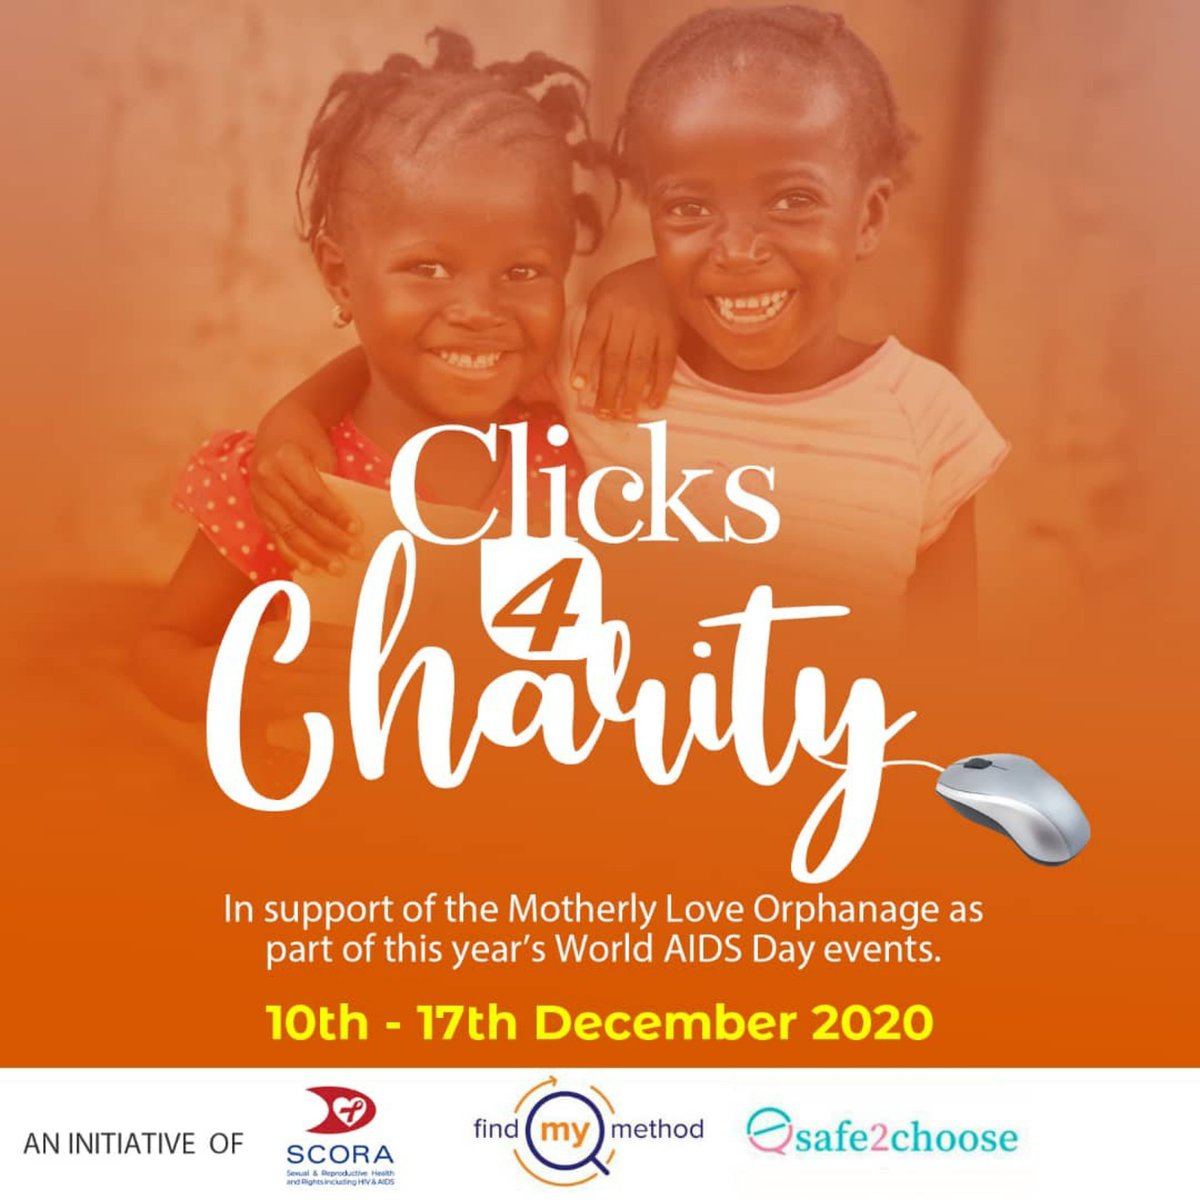 We are ending the year on a warm note by giving back to our society. SCORA-FGMSA has teamed up with Women First Digital to bring to you our latest innovation : CLICKS 4 CHARITY❤️👨🏾💻  This is being organized in support of the  Motherly Love Orphanage, located in Kwabenya, Accra.